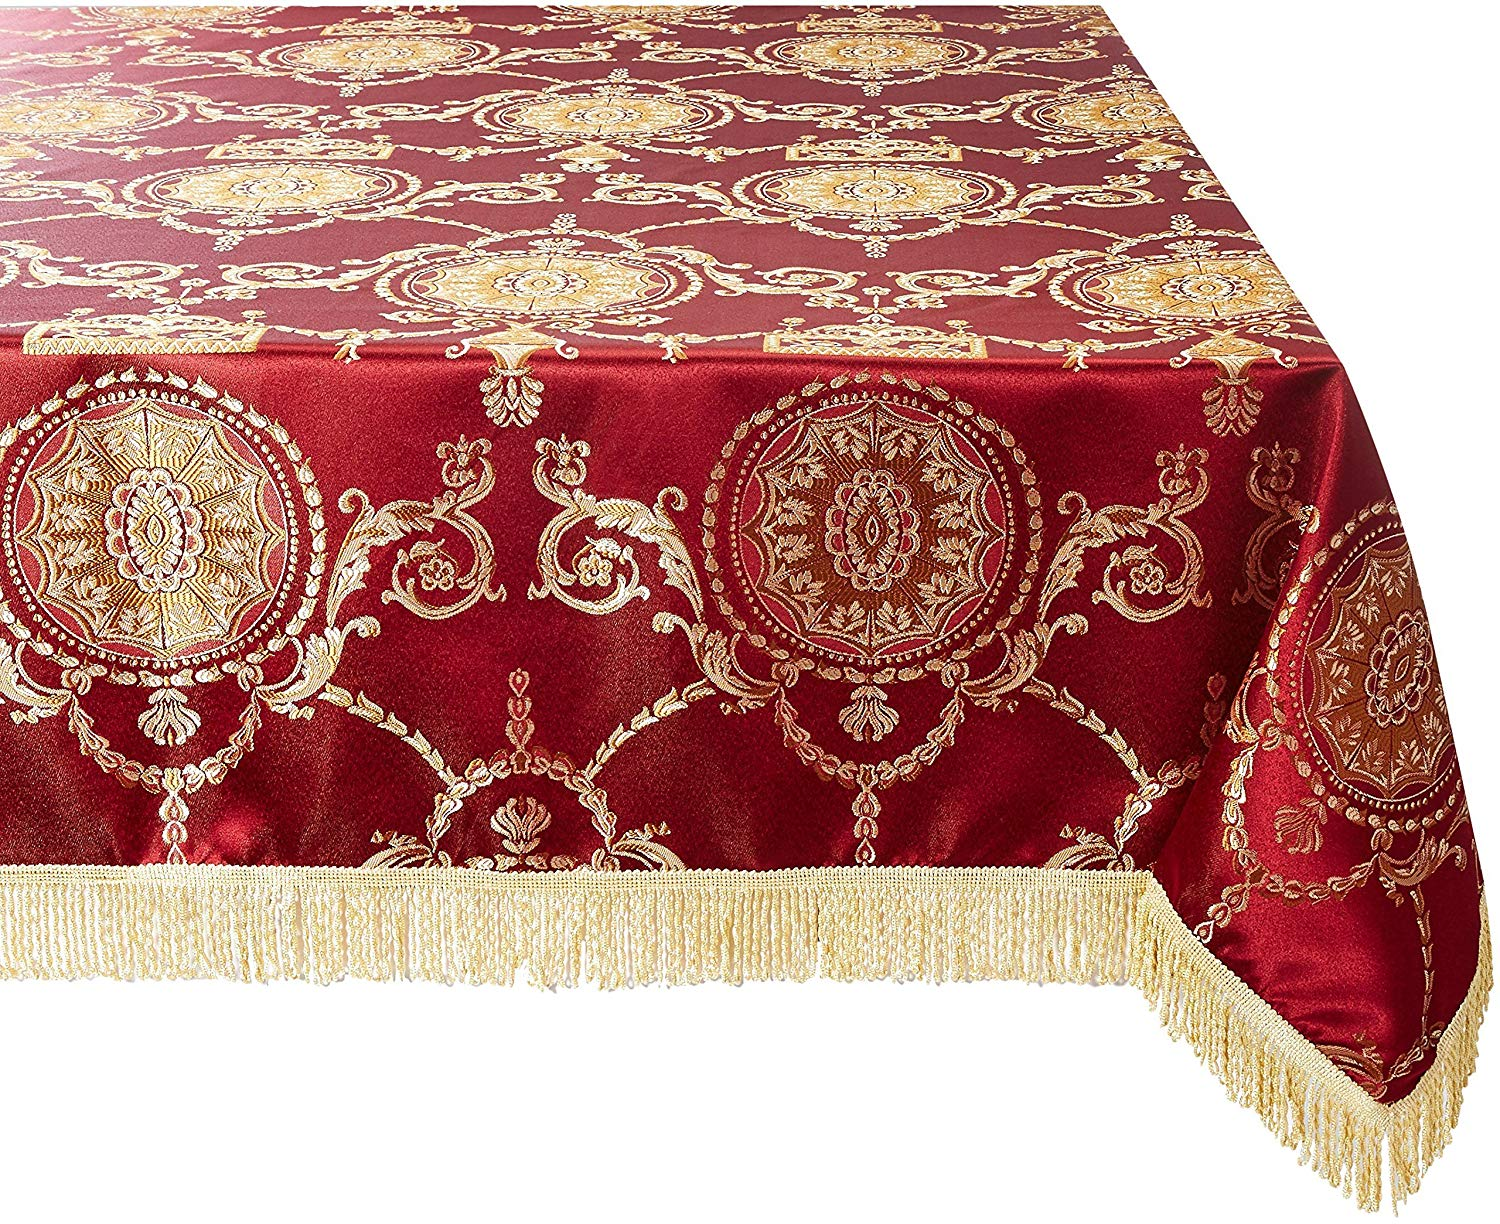 "Violet Linen Prestige Damask Design Oblong/Rectangle Tablecloth, 60"" x 84"", Burgundy"